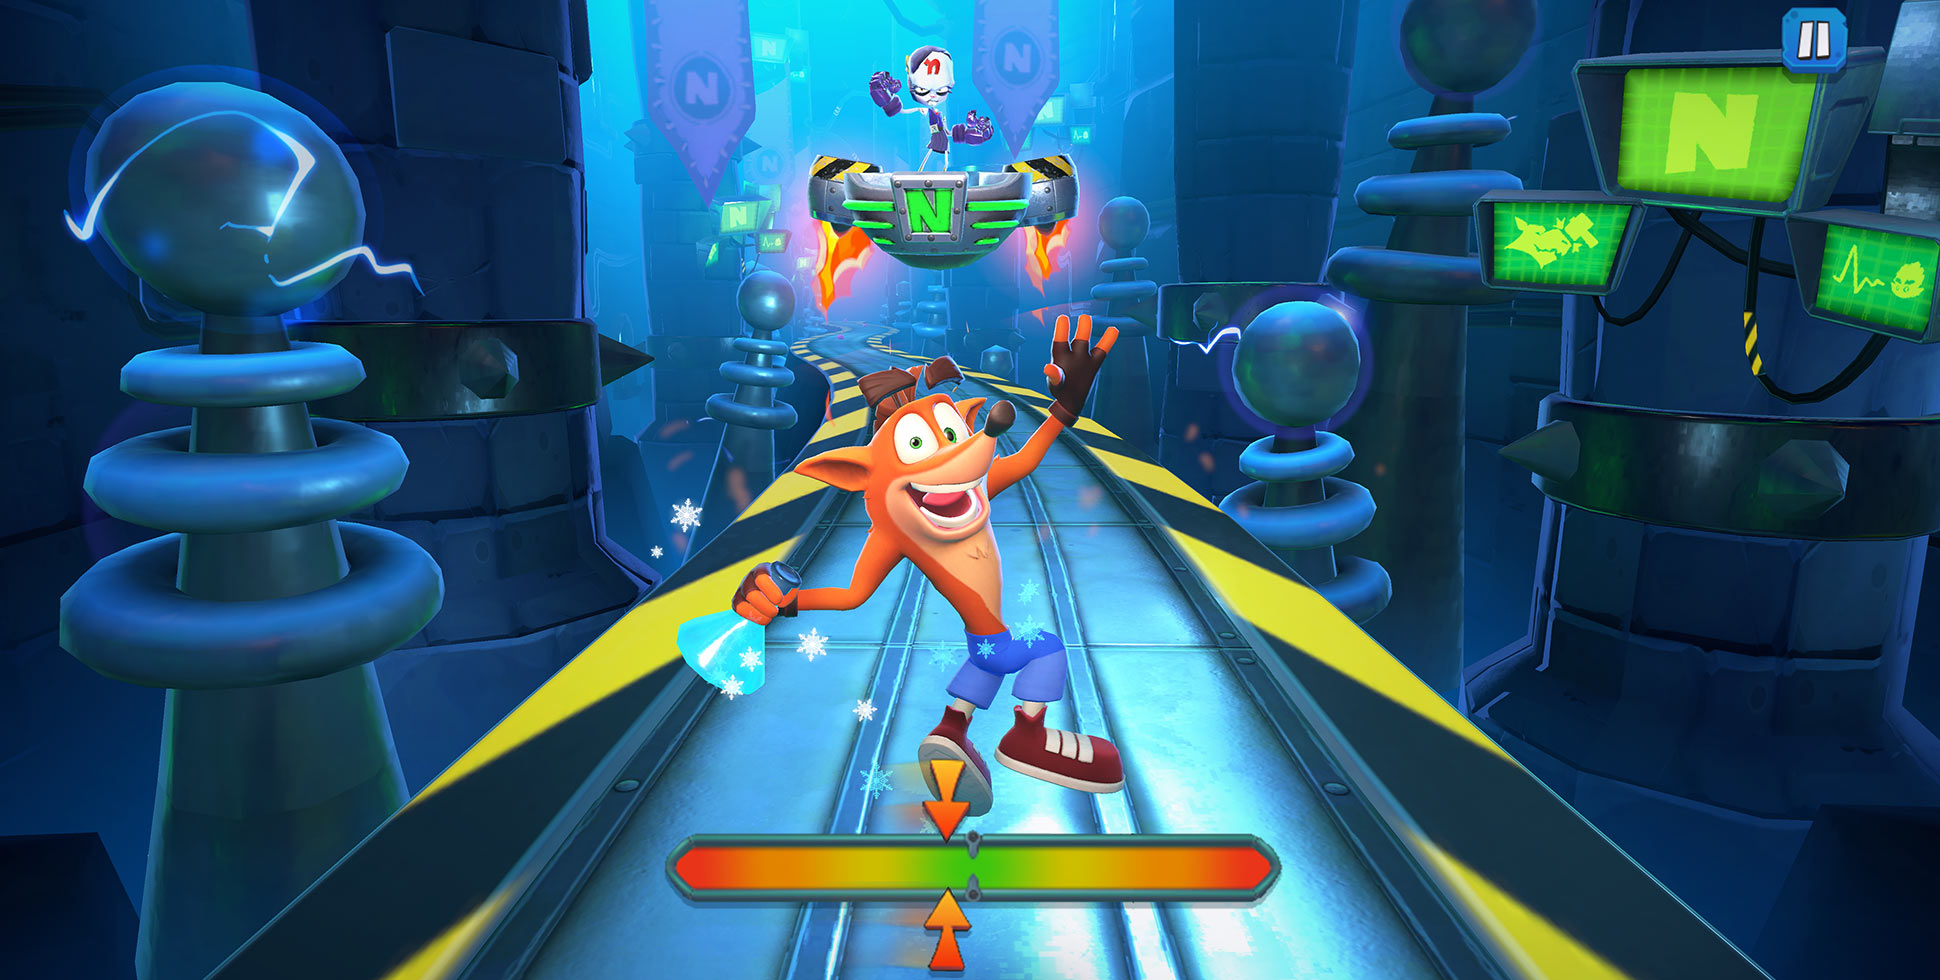 Bringing Console Gaming to Mobile with Crash Bandicoot: On the Run!™